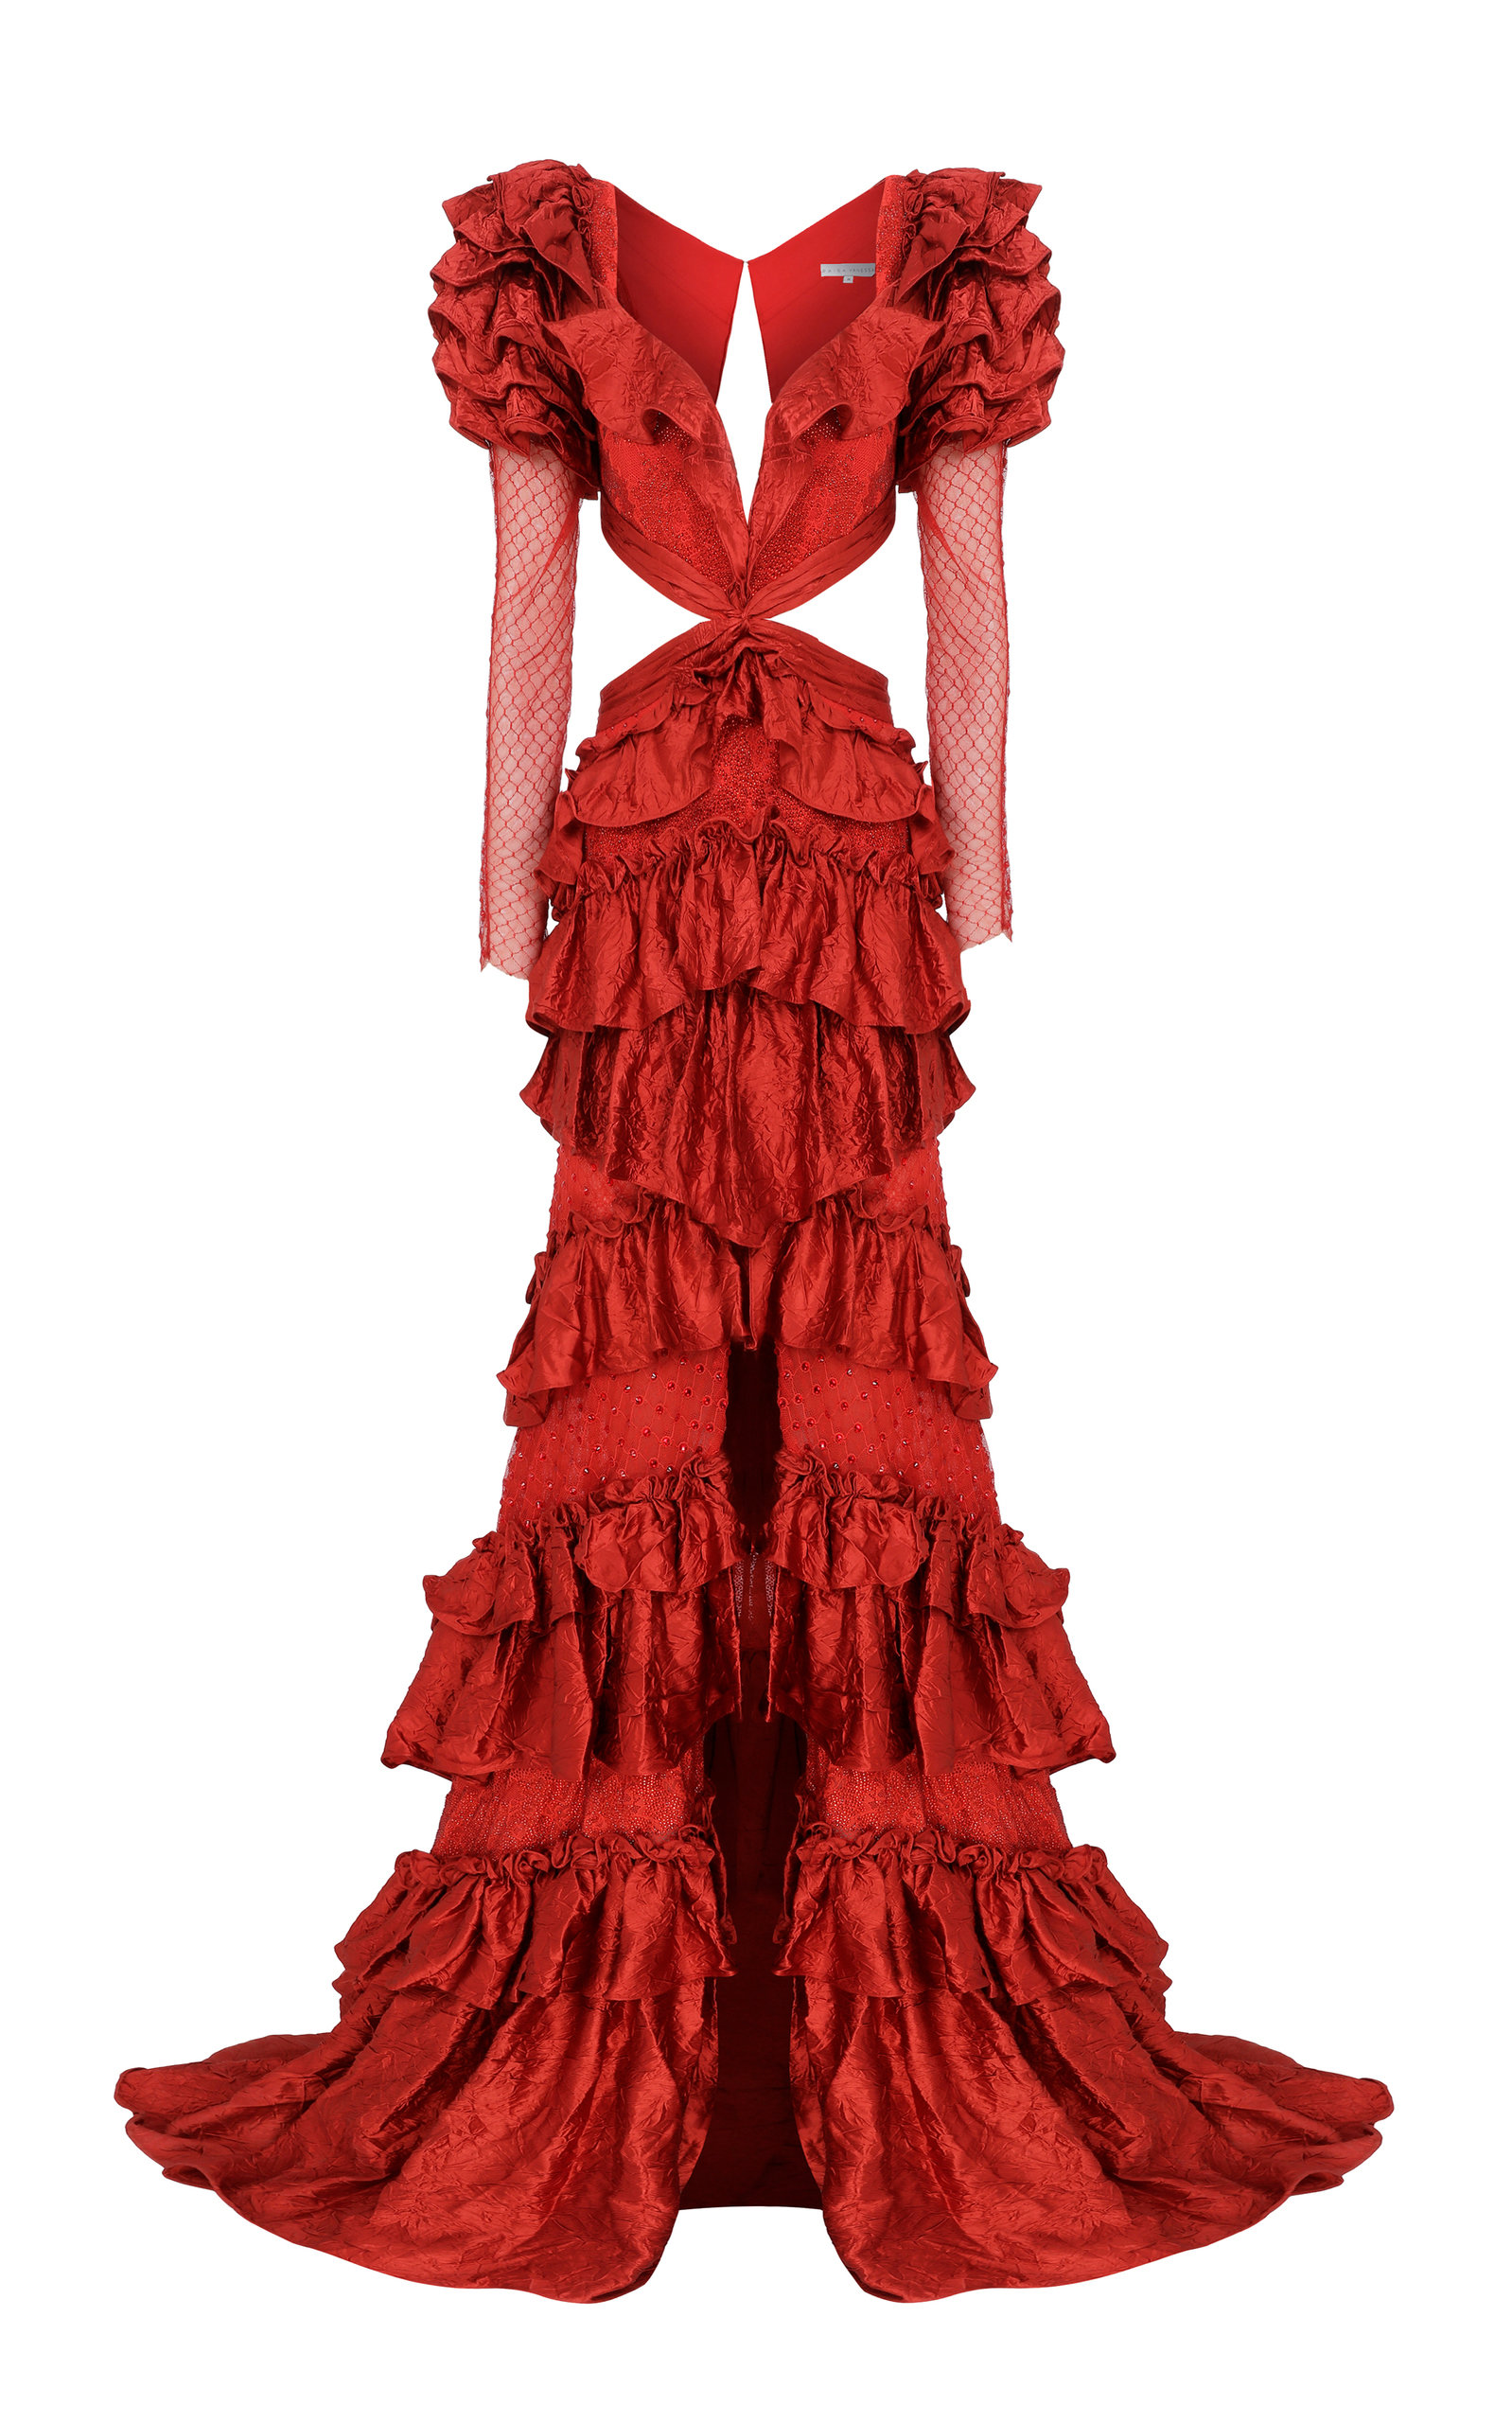 Buy Raisa Vanessa Red Maxi Dress With Lace Detailed And Ruffles online, shop Raisa Vanessa at the best price